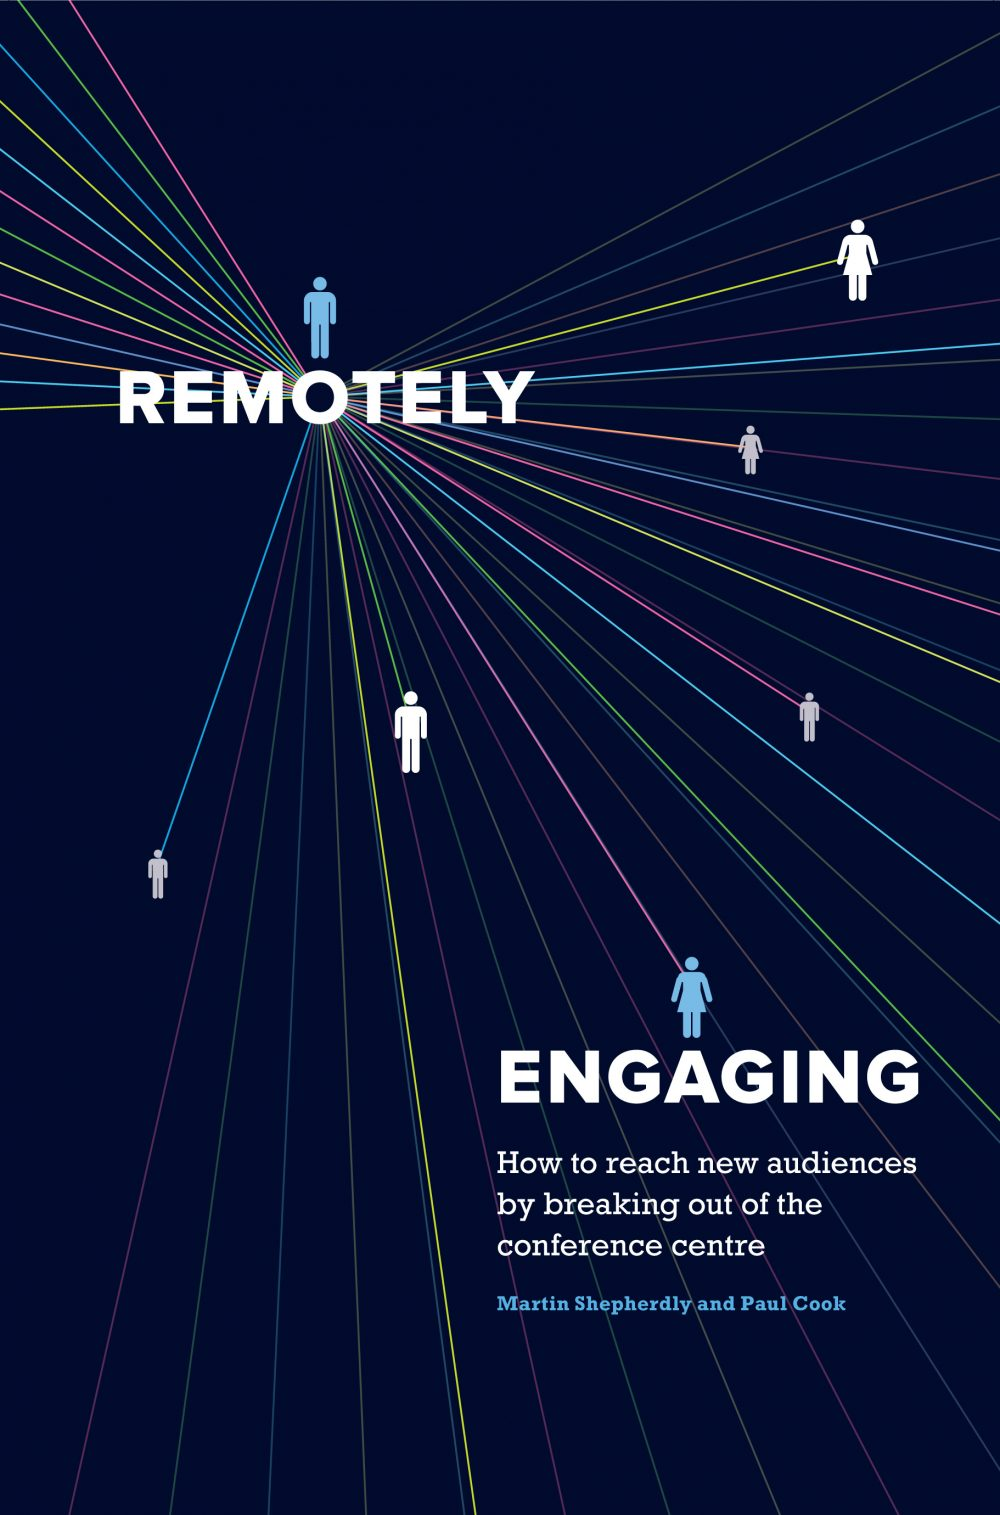 Remotely Engaging – How to reach new audiences by breaking out of the conference centre